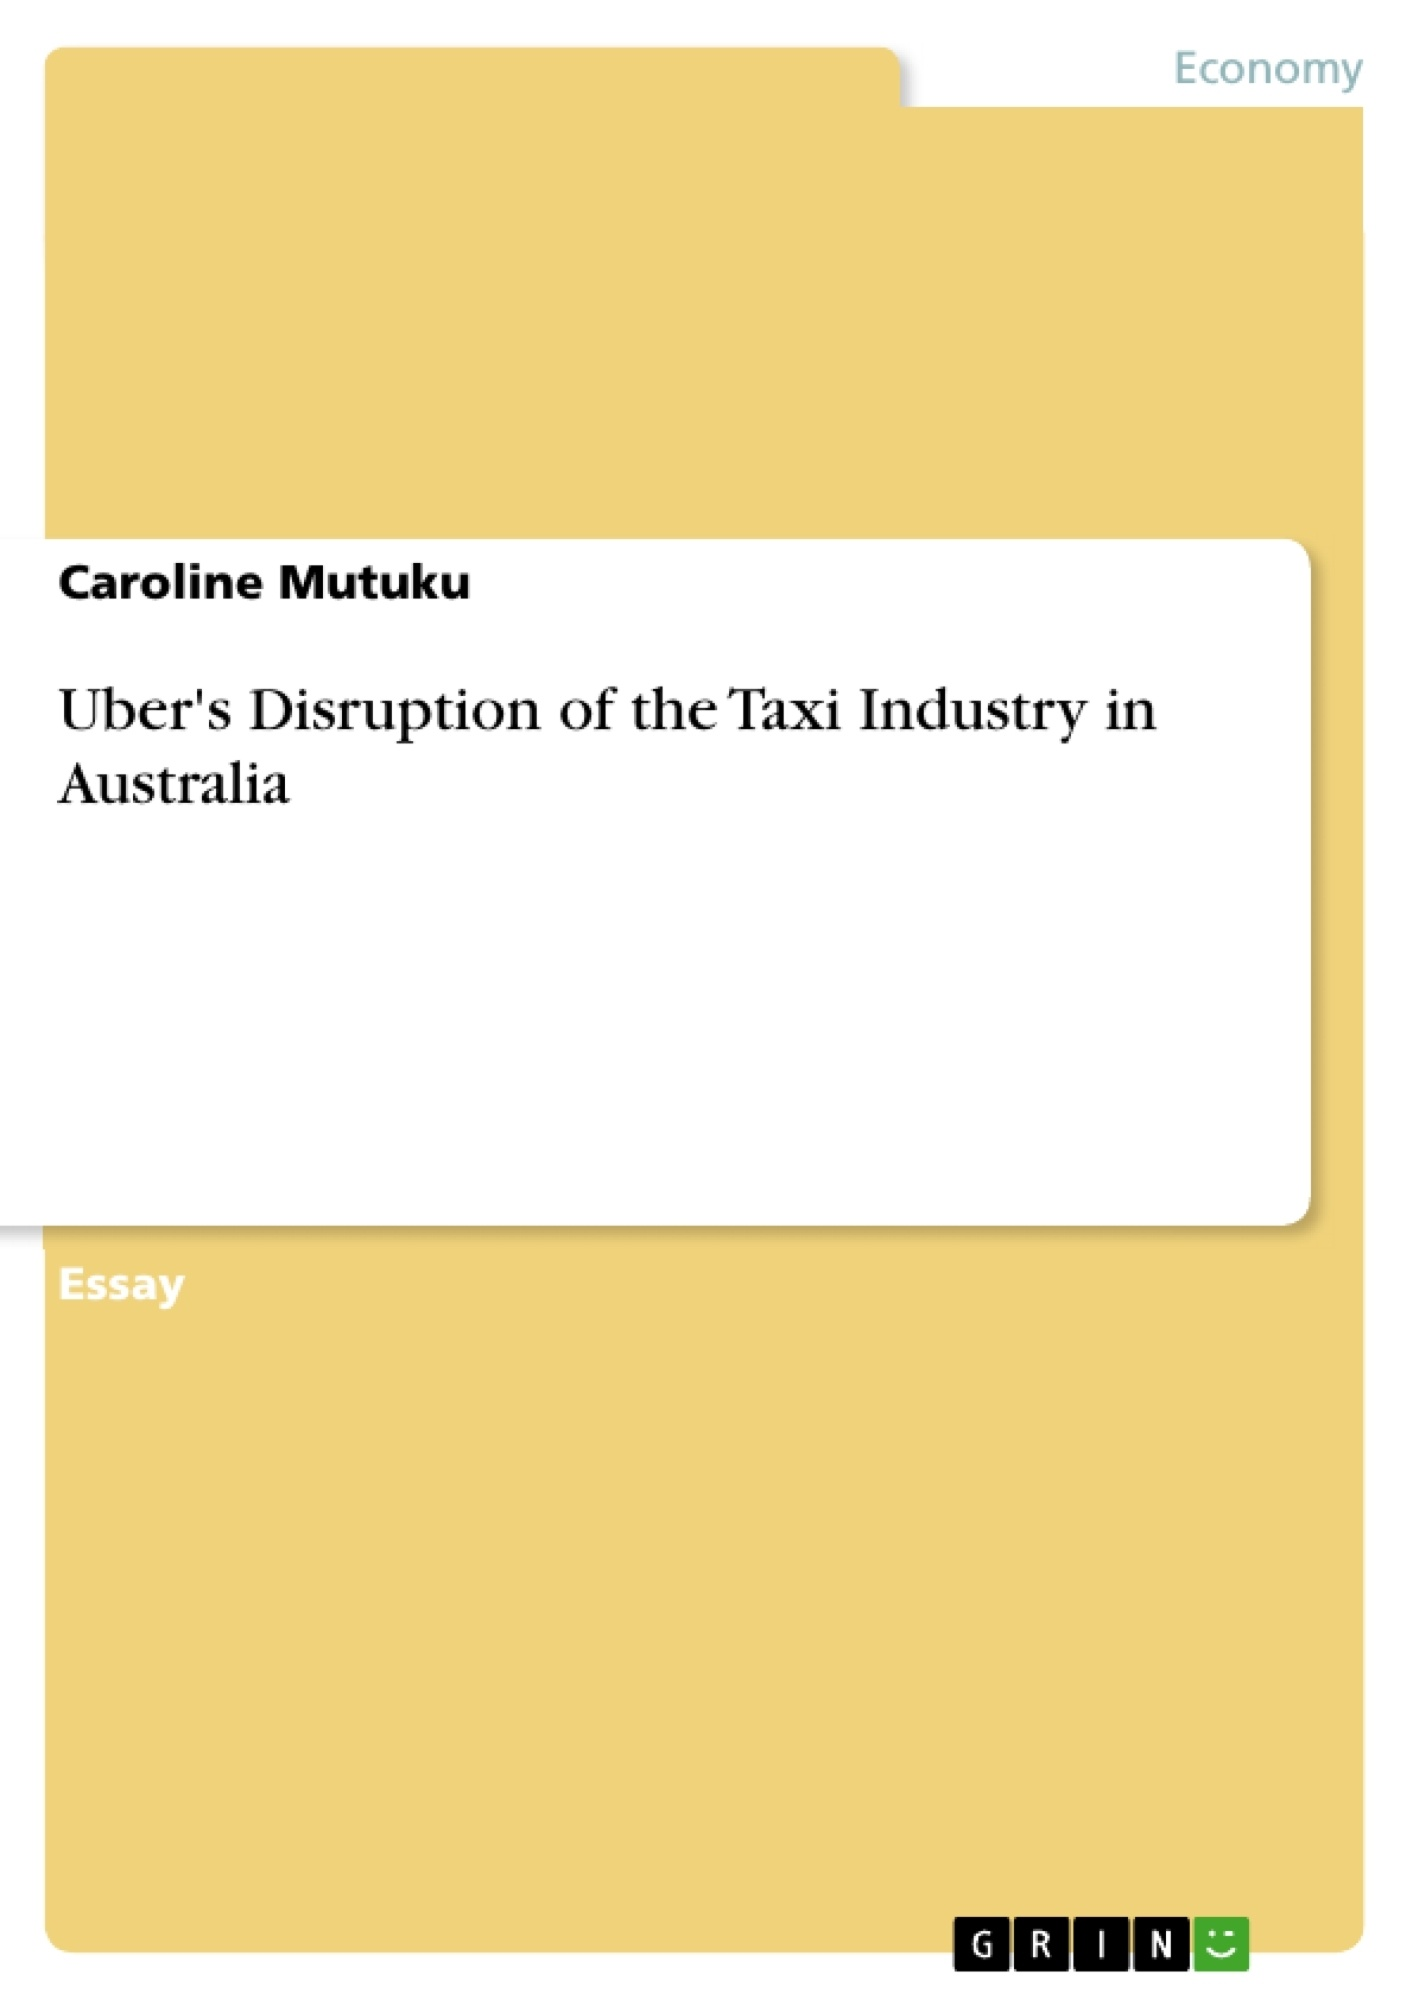 Title: Uber's Disruption of the Taxi Industry in Australia